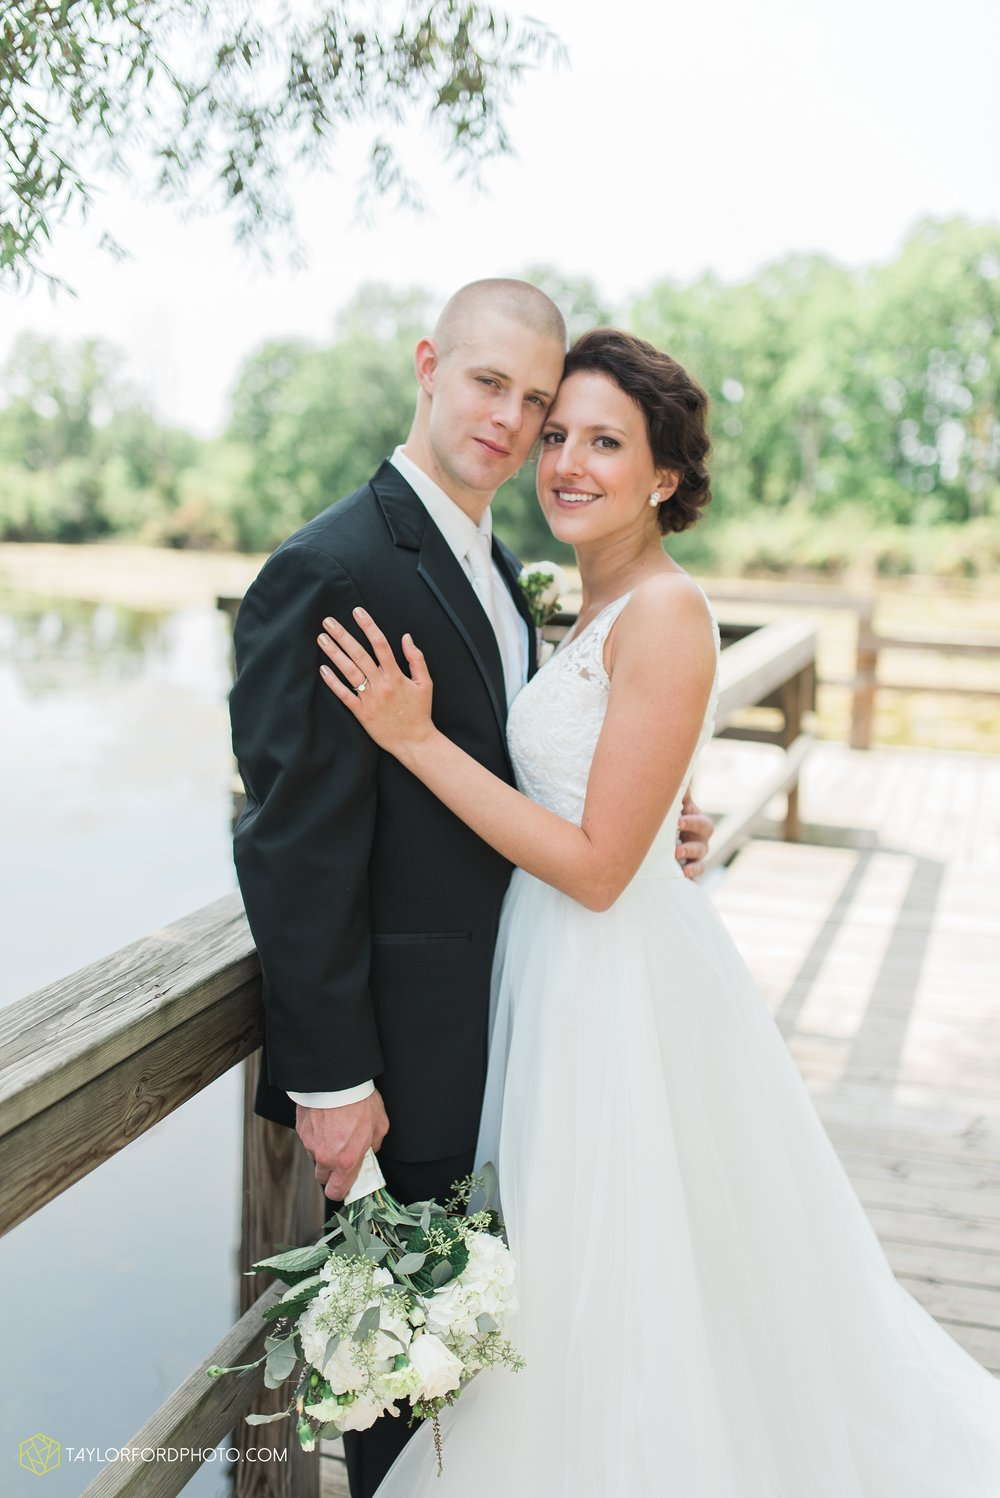 charlotte-battlecreek-michigan-wedding-photographer-Taylor-Ford-Photography-Ohio-Indiana_2912.jpg